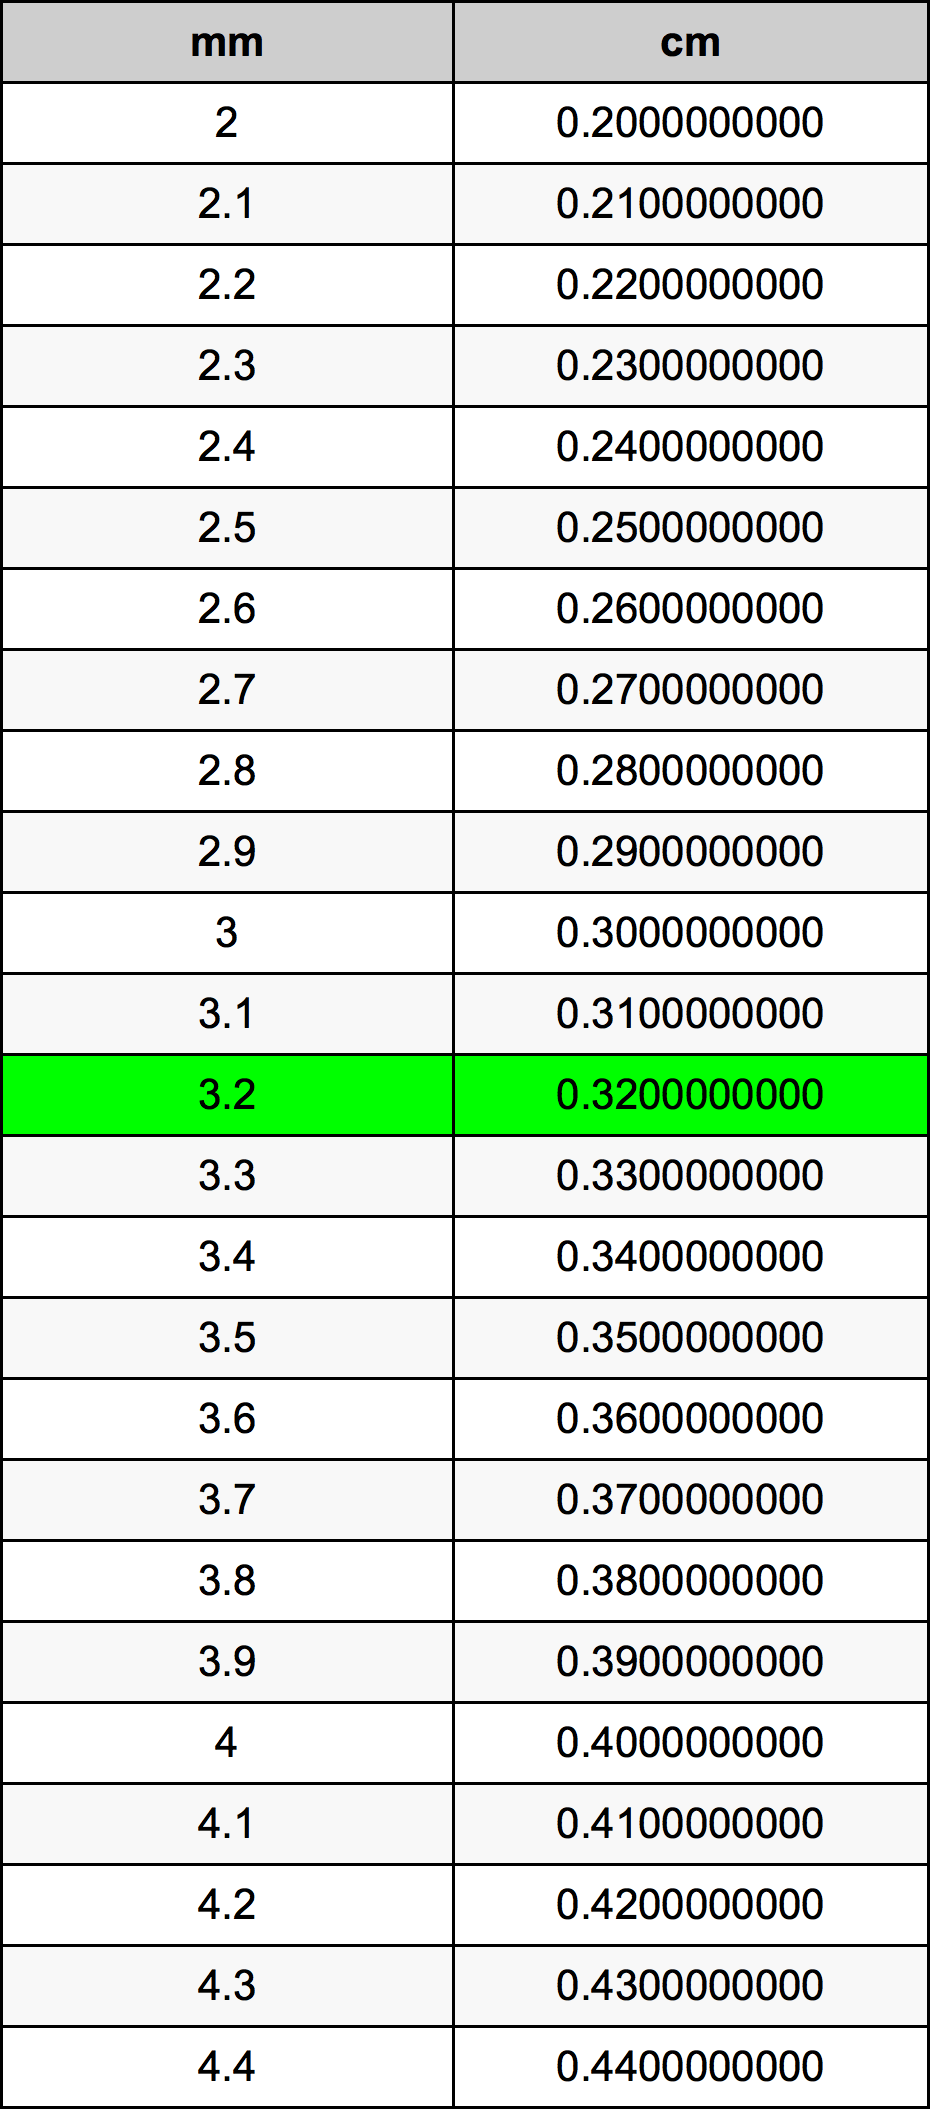 Further Millimeters To Centimeters Calculations